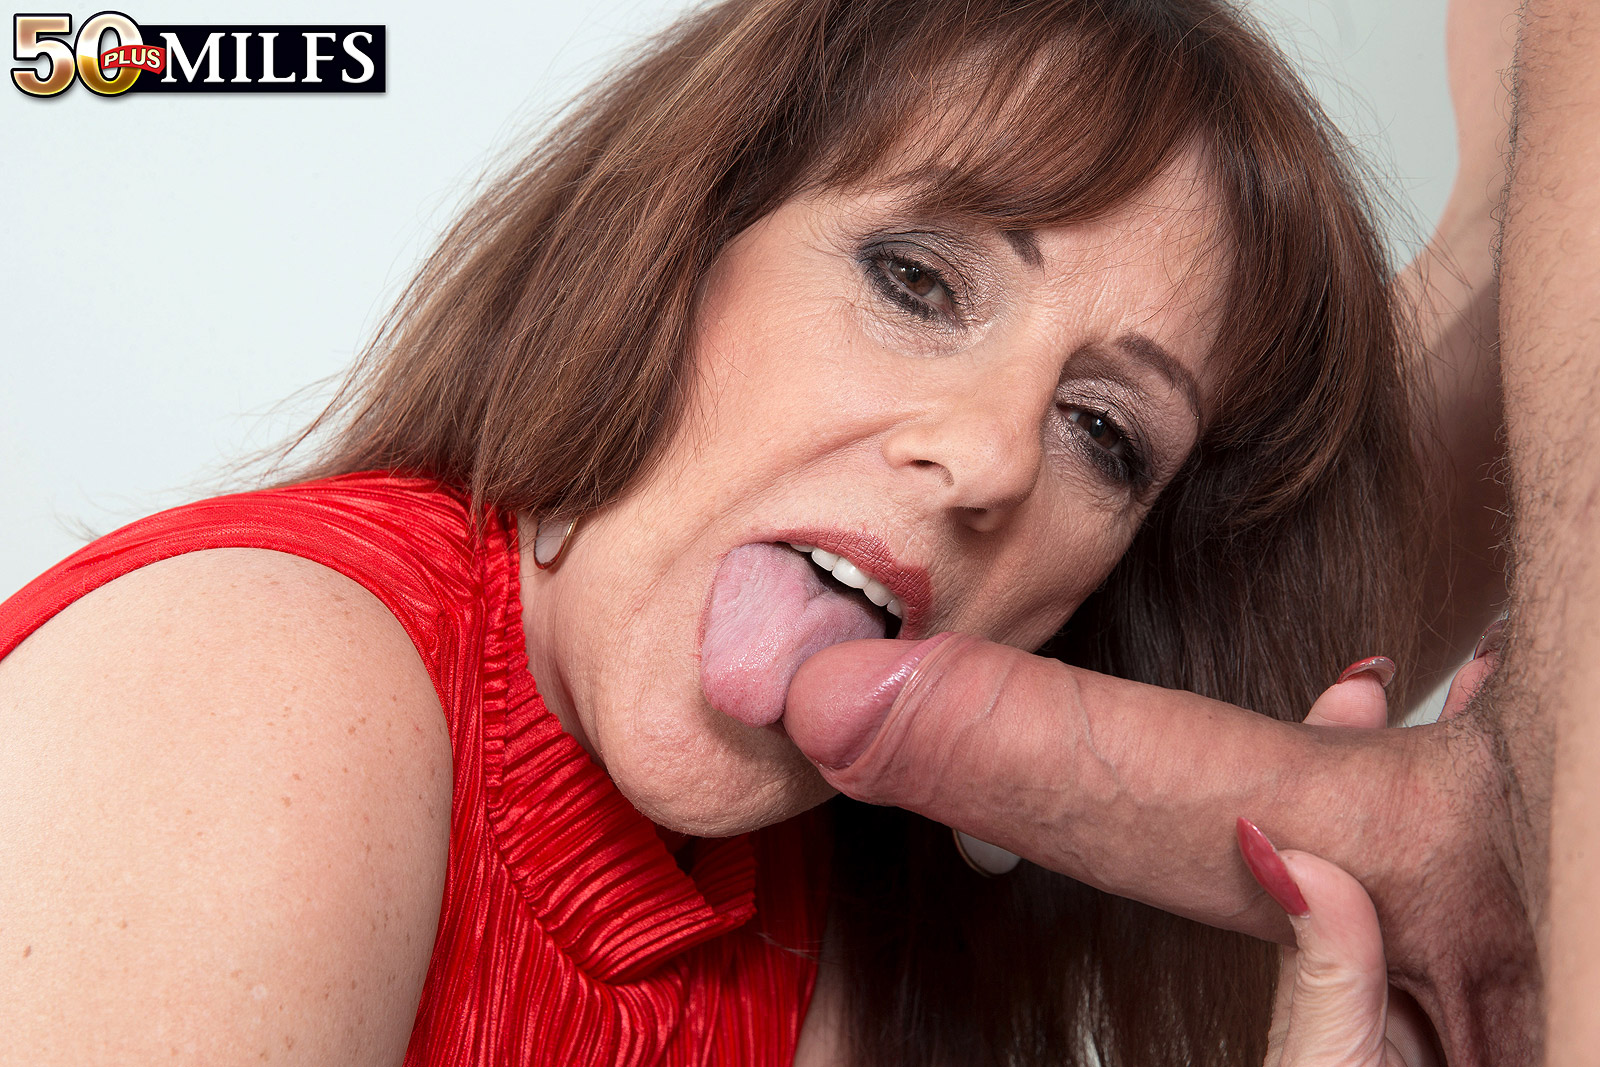 sexy mom blows the delivery guy #1